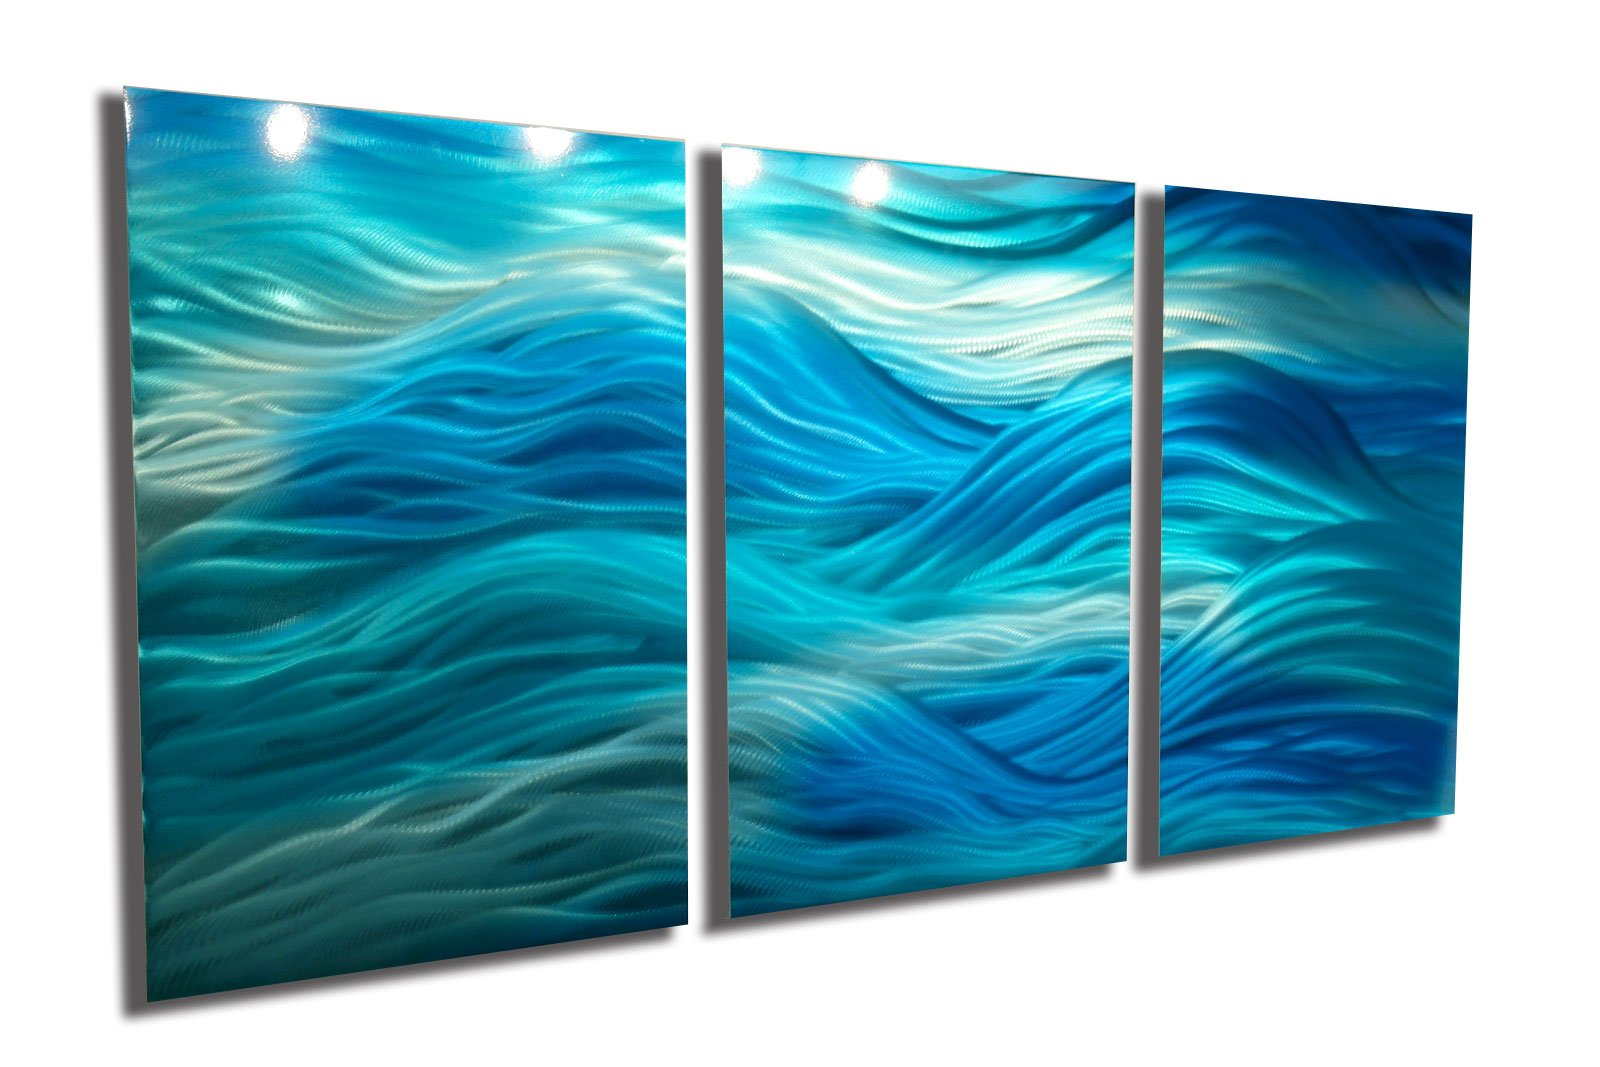 Metal Wall Art, Modern Home Decor, Abstract Artwork Sculpture- Caribbean by Miles Shay by Miles Shay